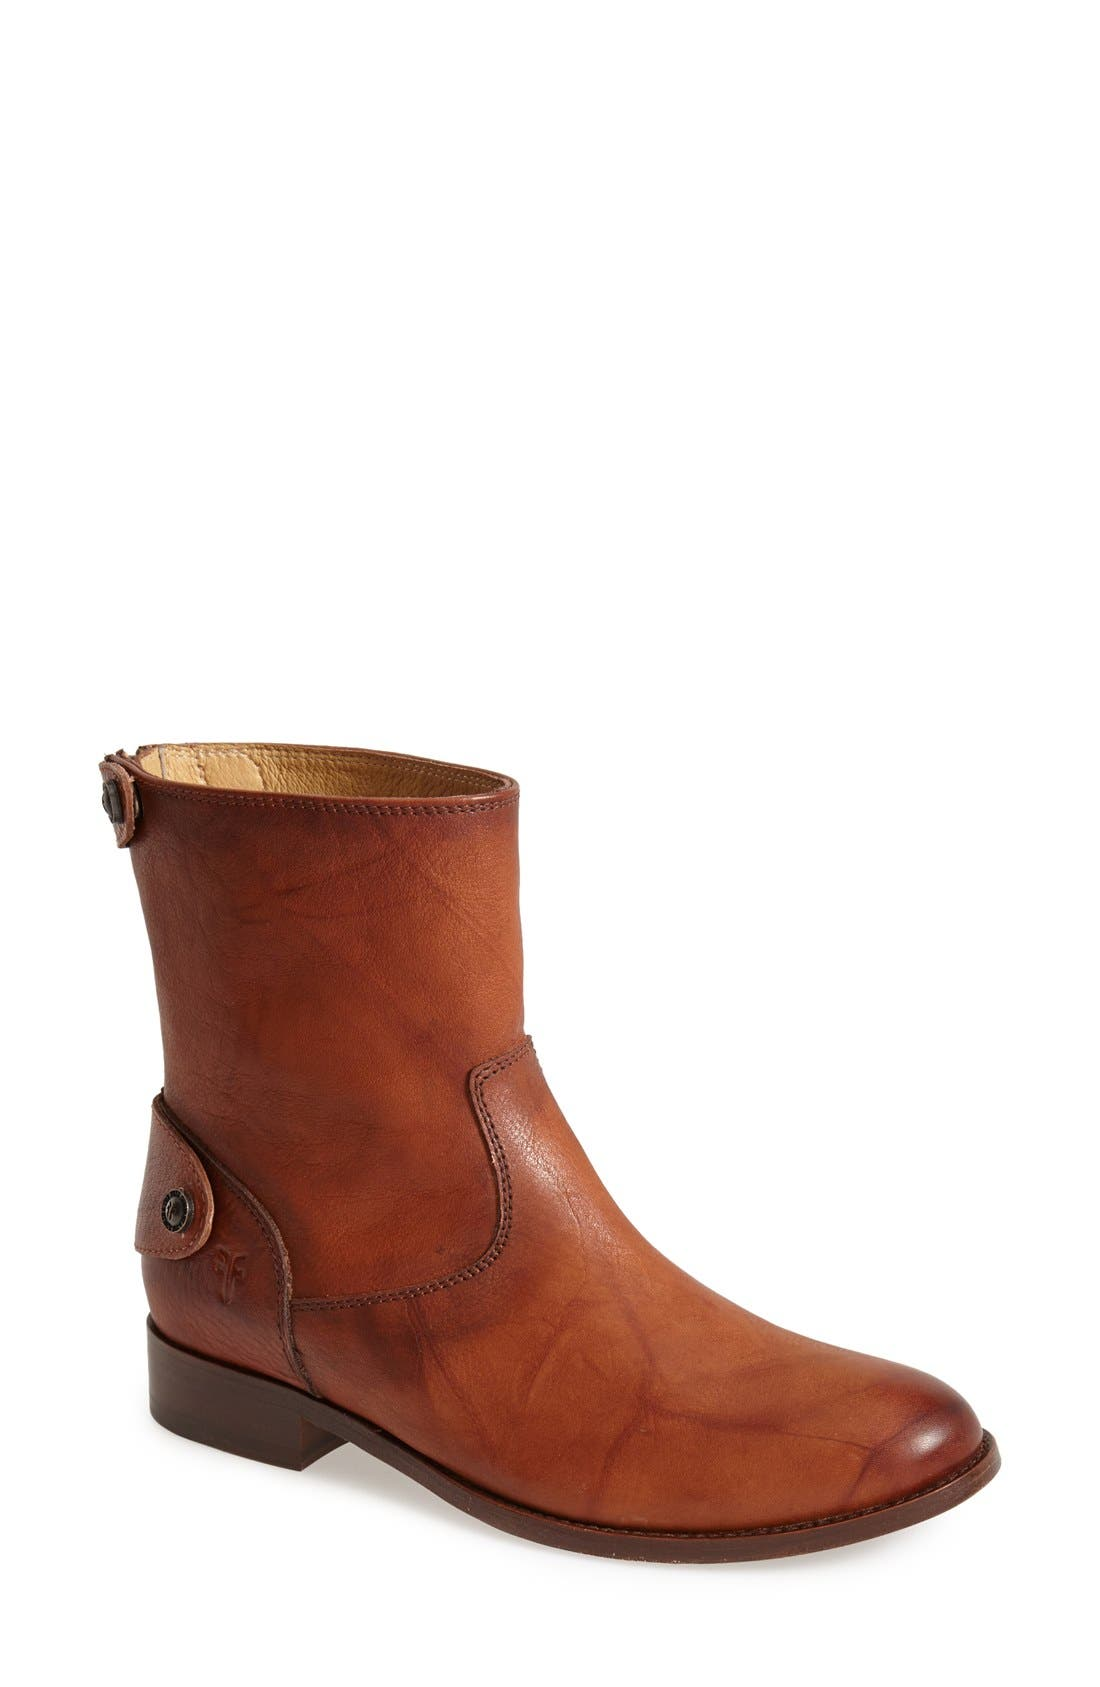 Alternate Image 1 Selected - Frye 'Melissa Button' Zip Short Boot (Women)